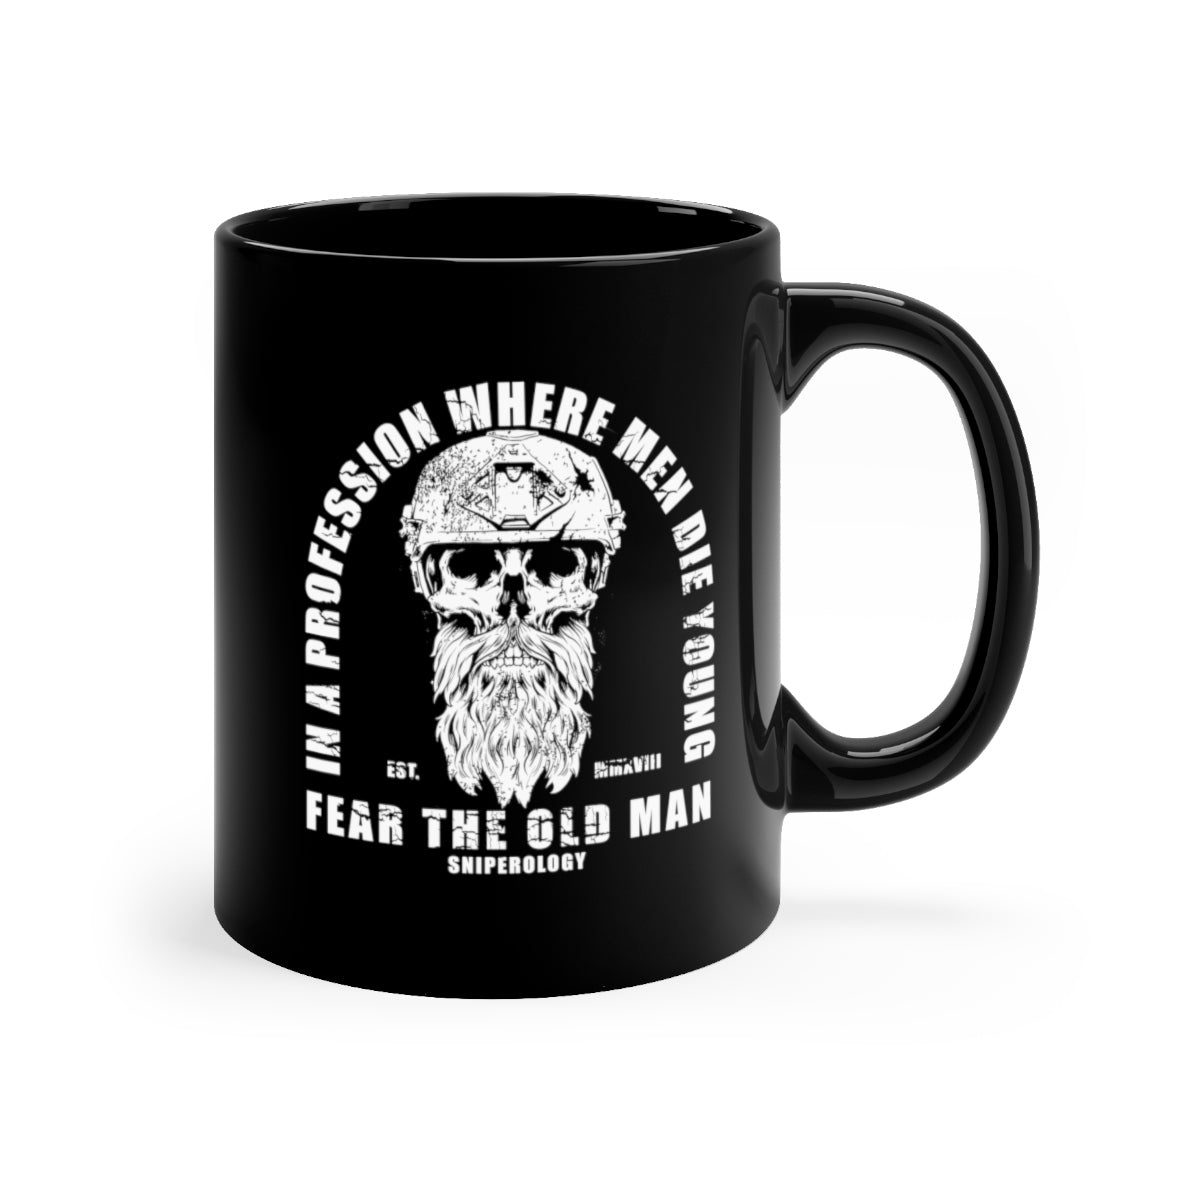 Fear The Old Man - Black mug 11oz - Sniperology